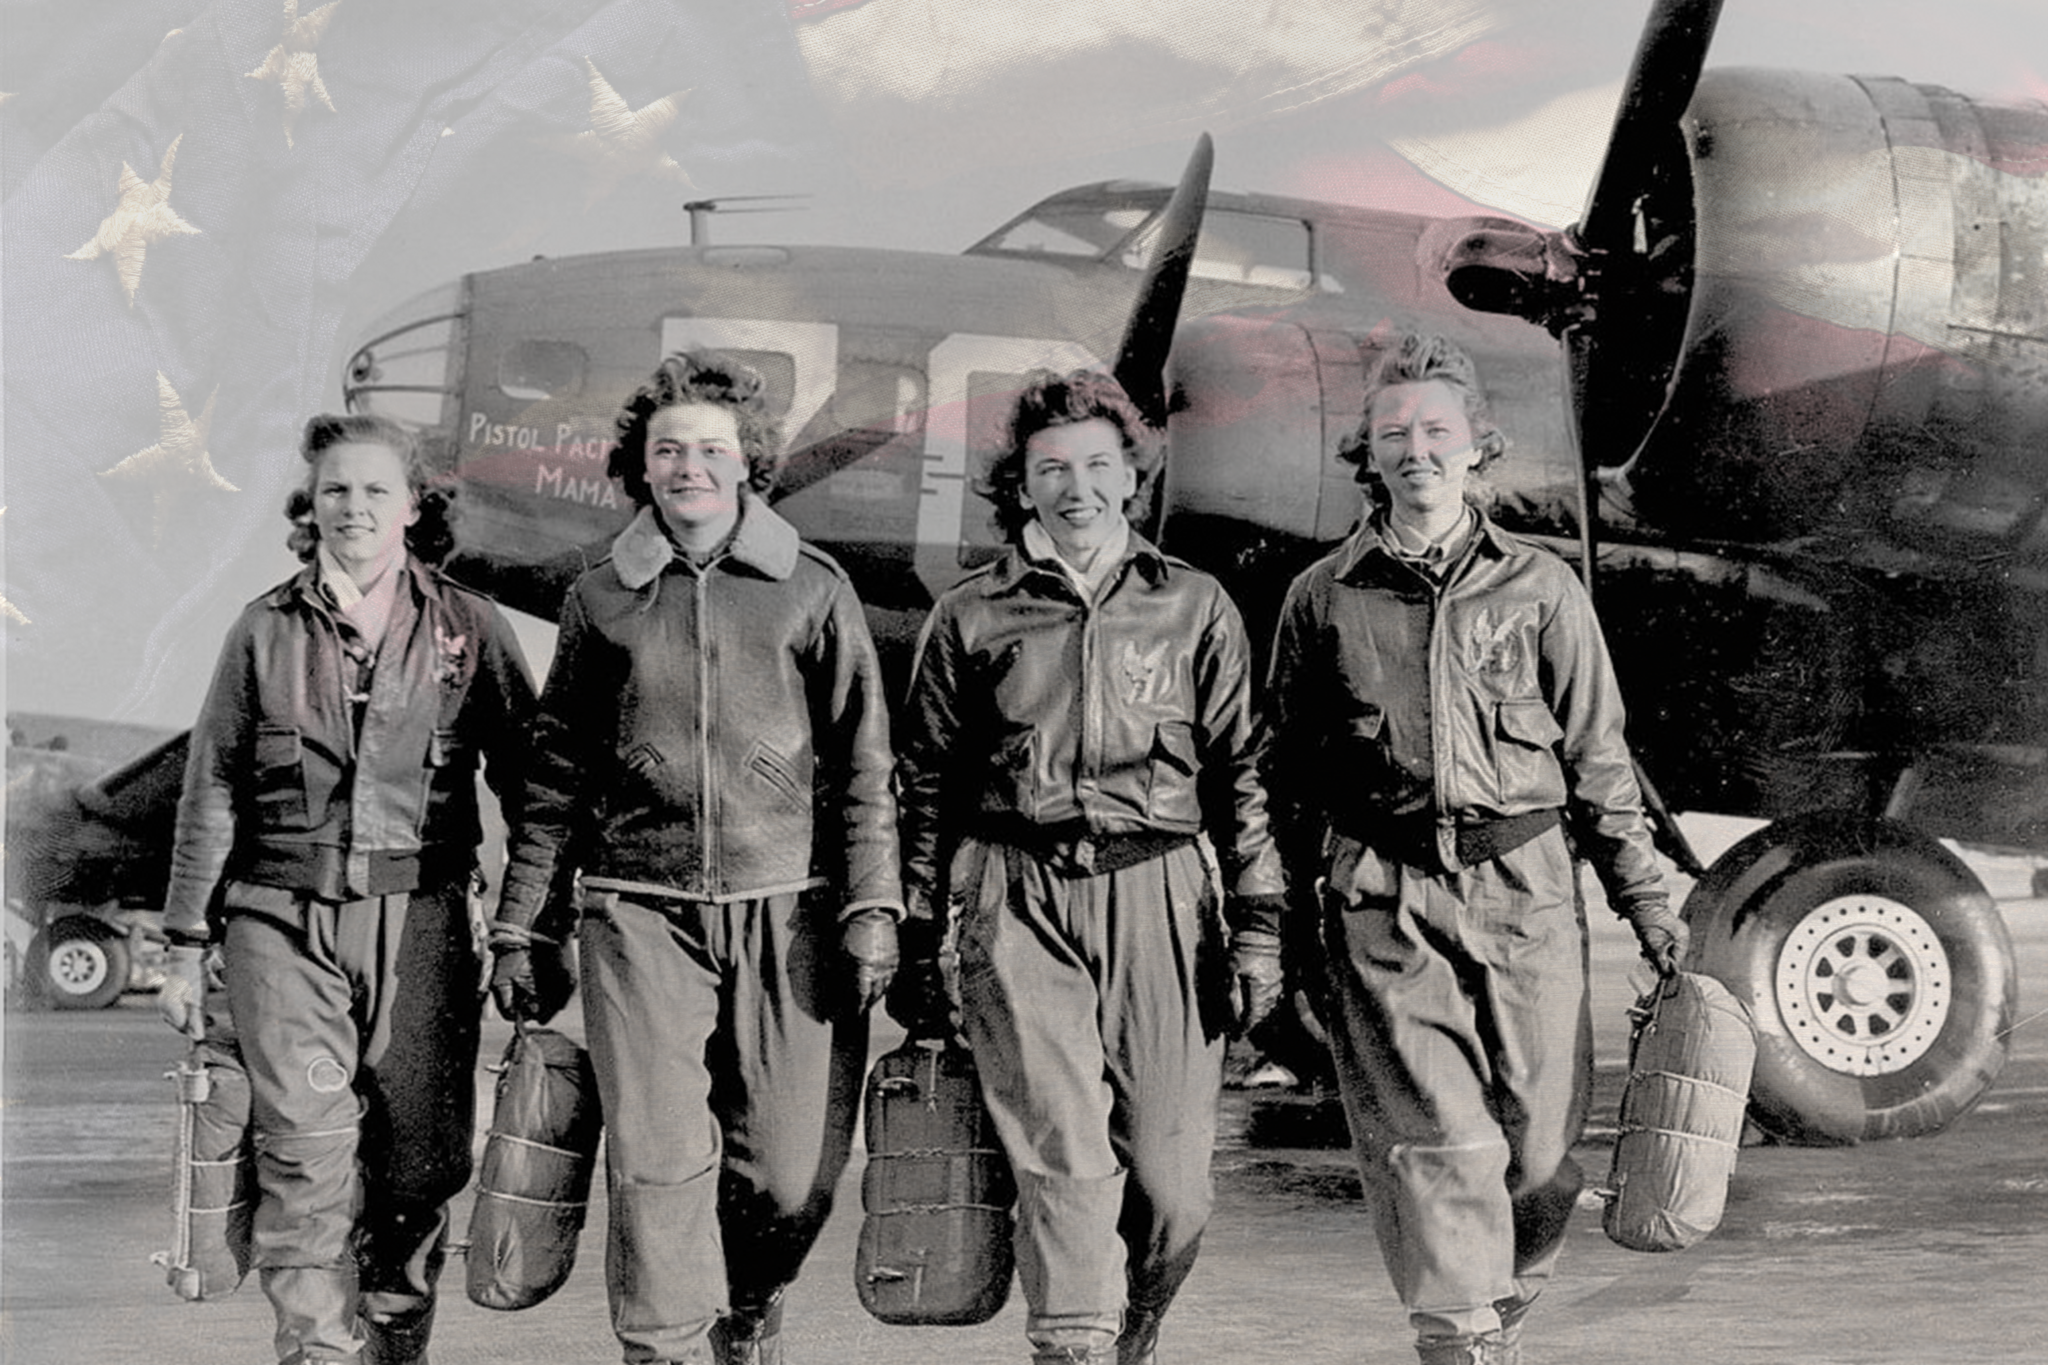 Iconic WAPS women walking in front of their airplanes